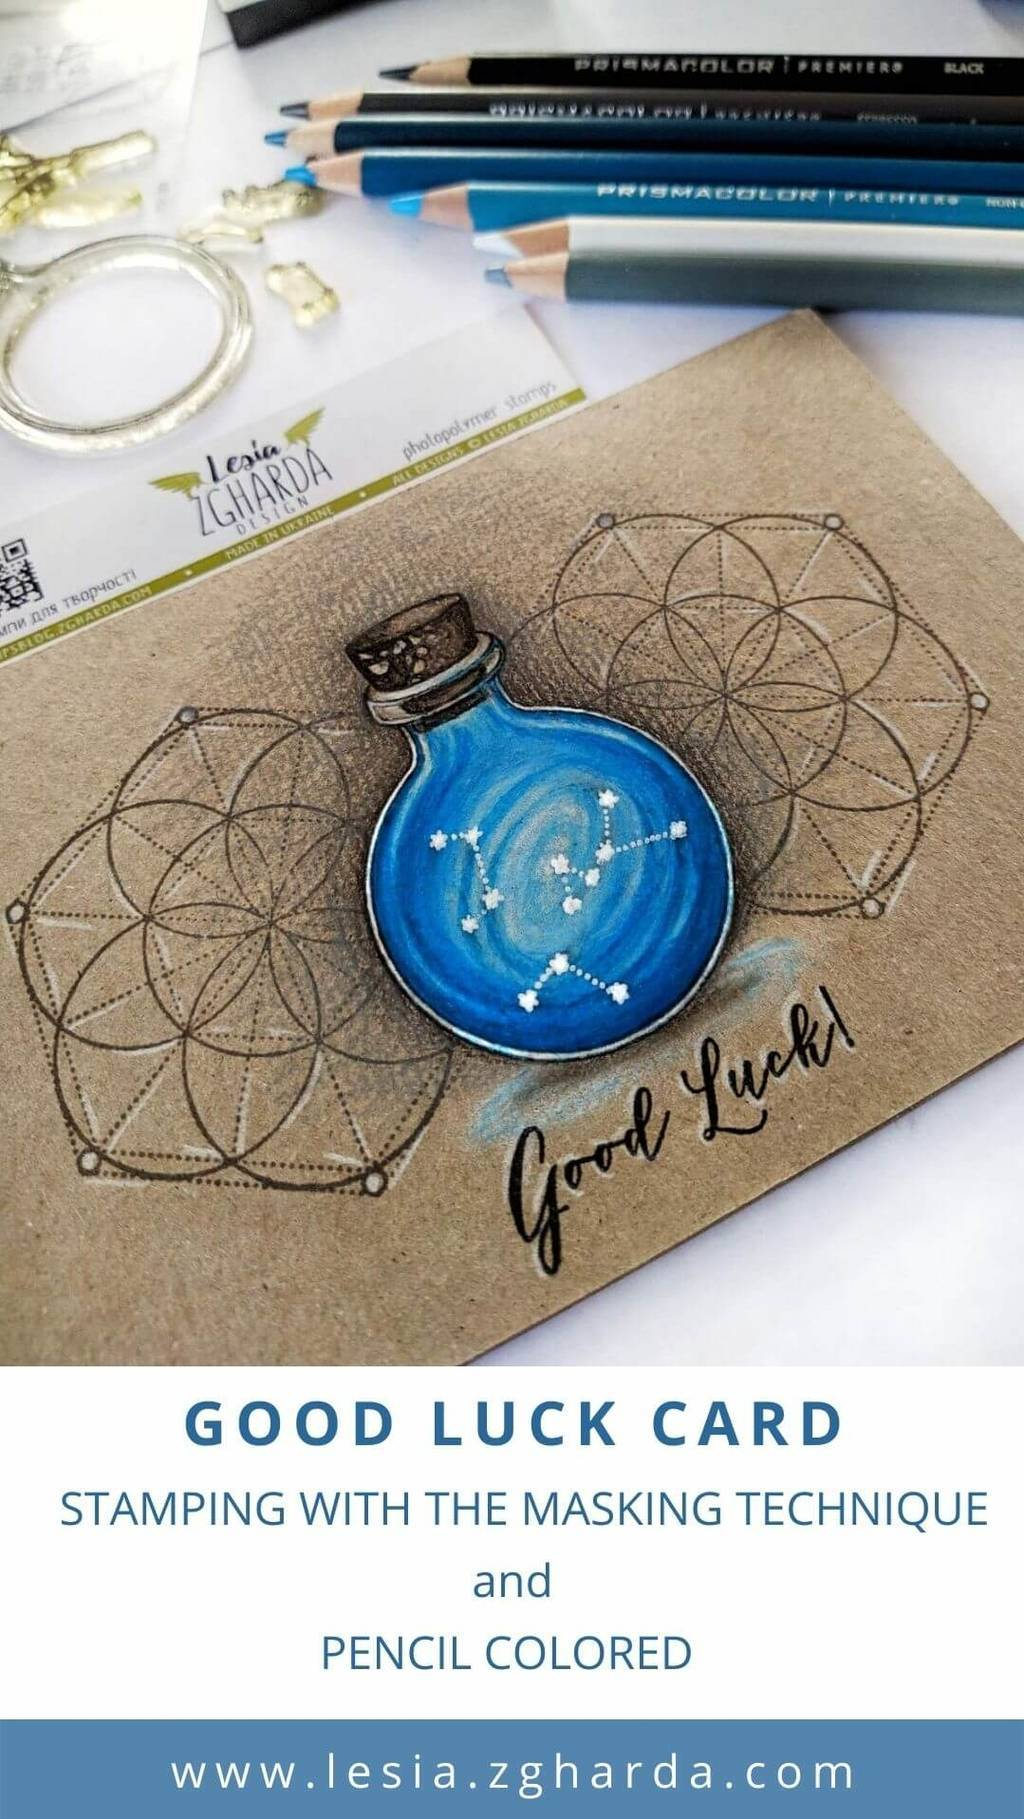 Good luck card | Lesia Zgharda Stamps. You see magic and space blue bottle with the constellations and geometric background stamps on this card. All these stamps you can order online in our store. Welcome!